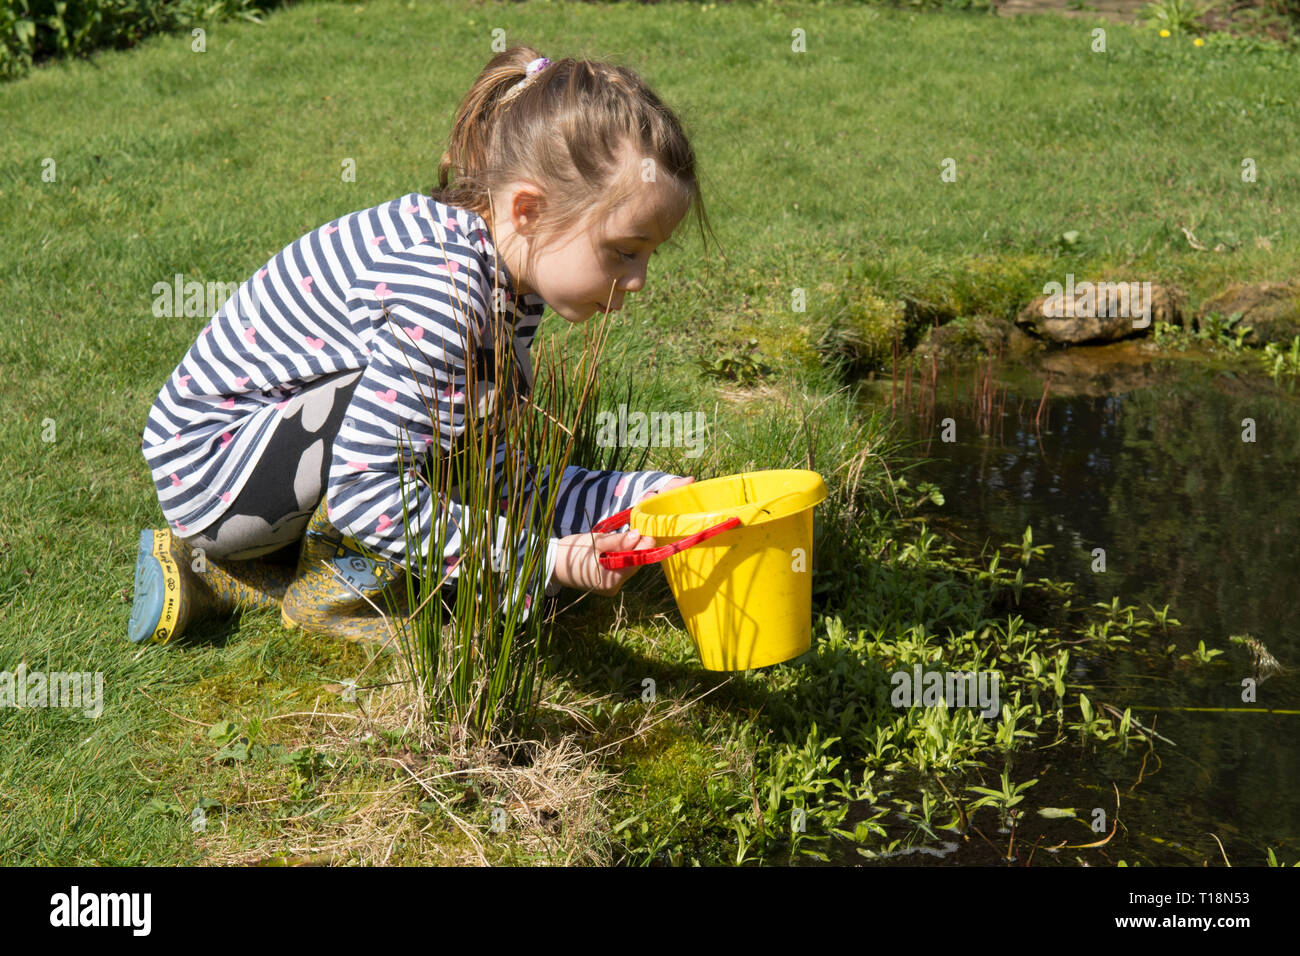 young girl pond dipping in garden wildlife pond removing tadpoles in children's bucket, seven years old. UK. March. Stock Photo